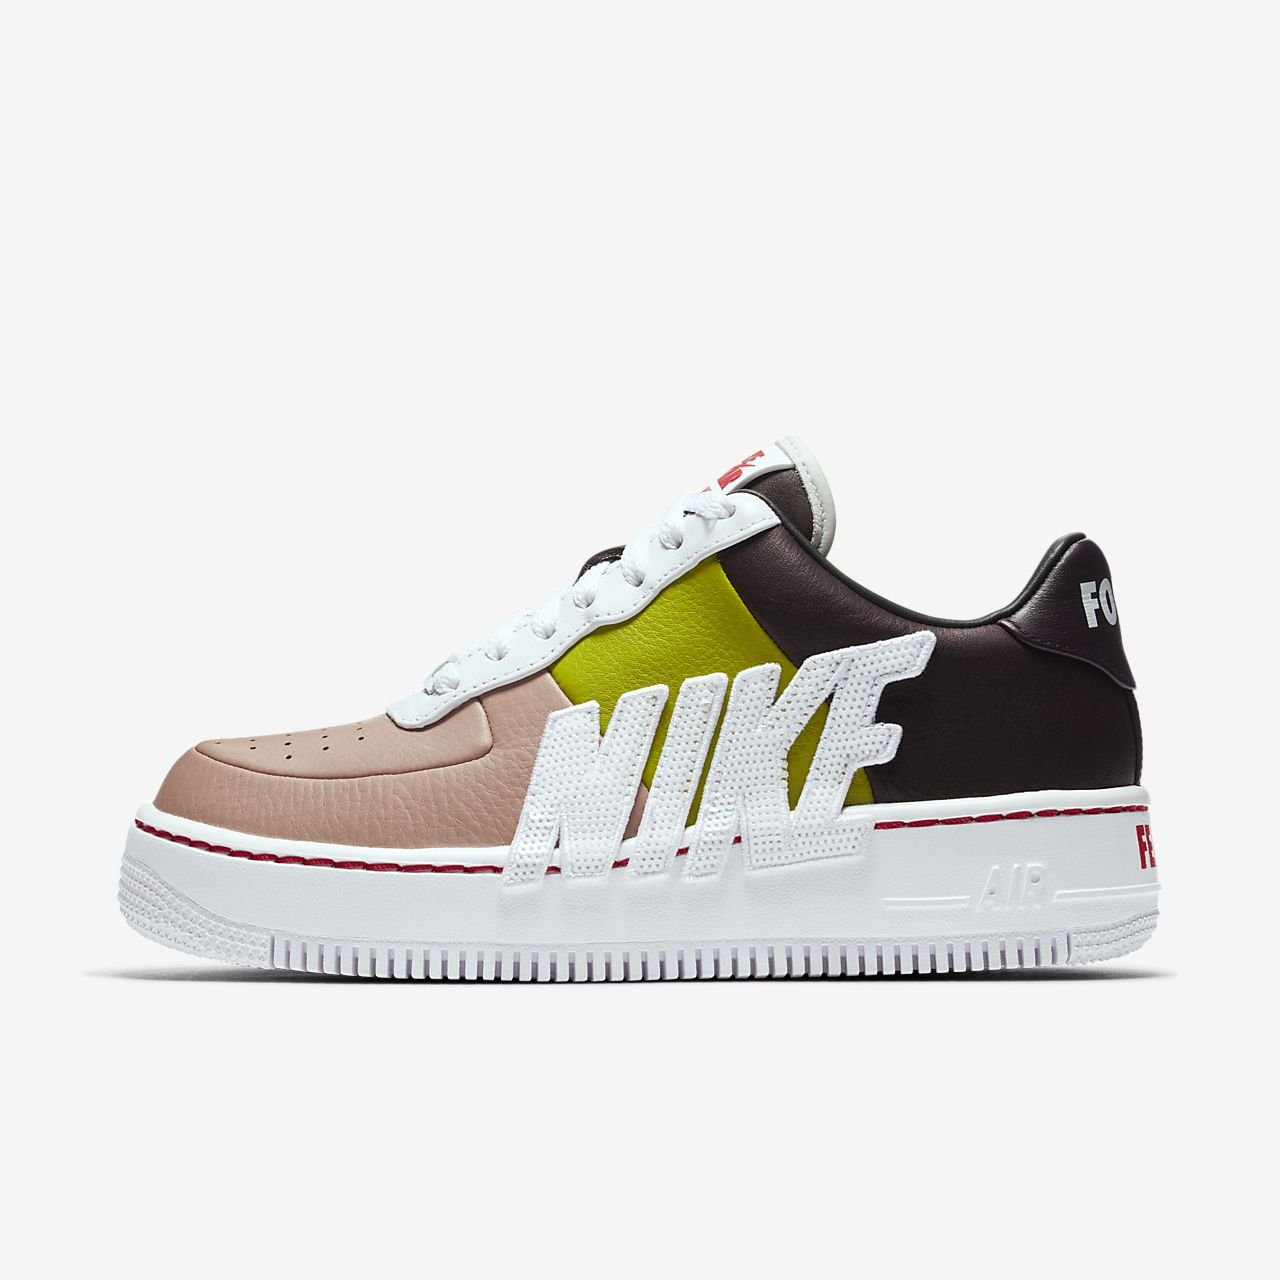 NIKE AIR FORCE 1 UPSTEP LX Women's Shoe - Port Wine/Bright Cactus/White